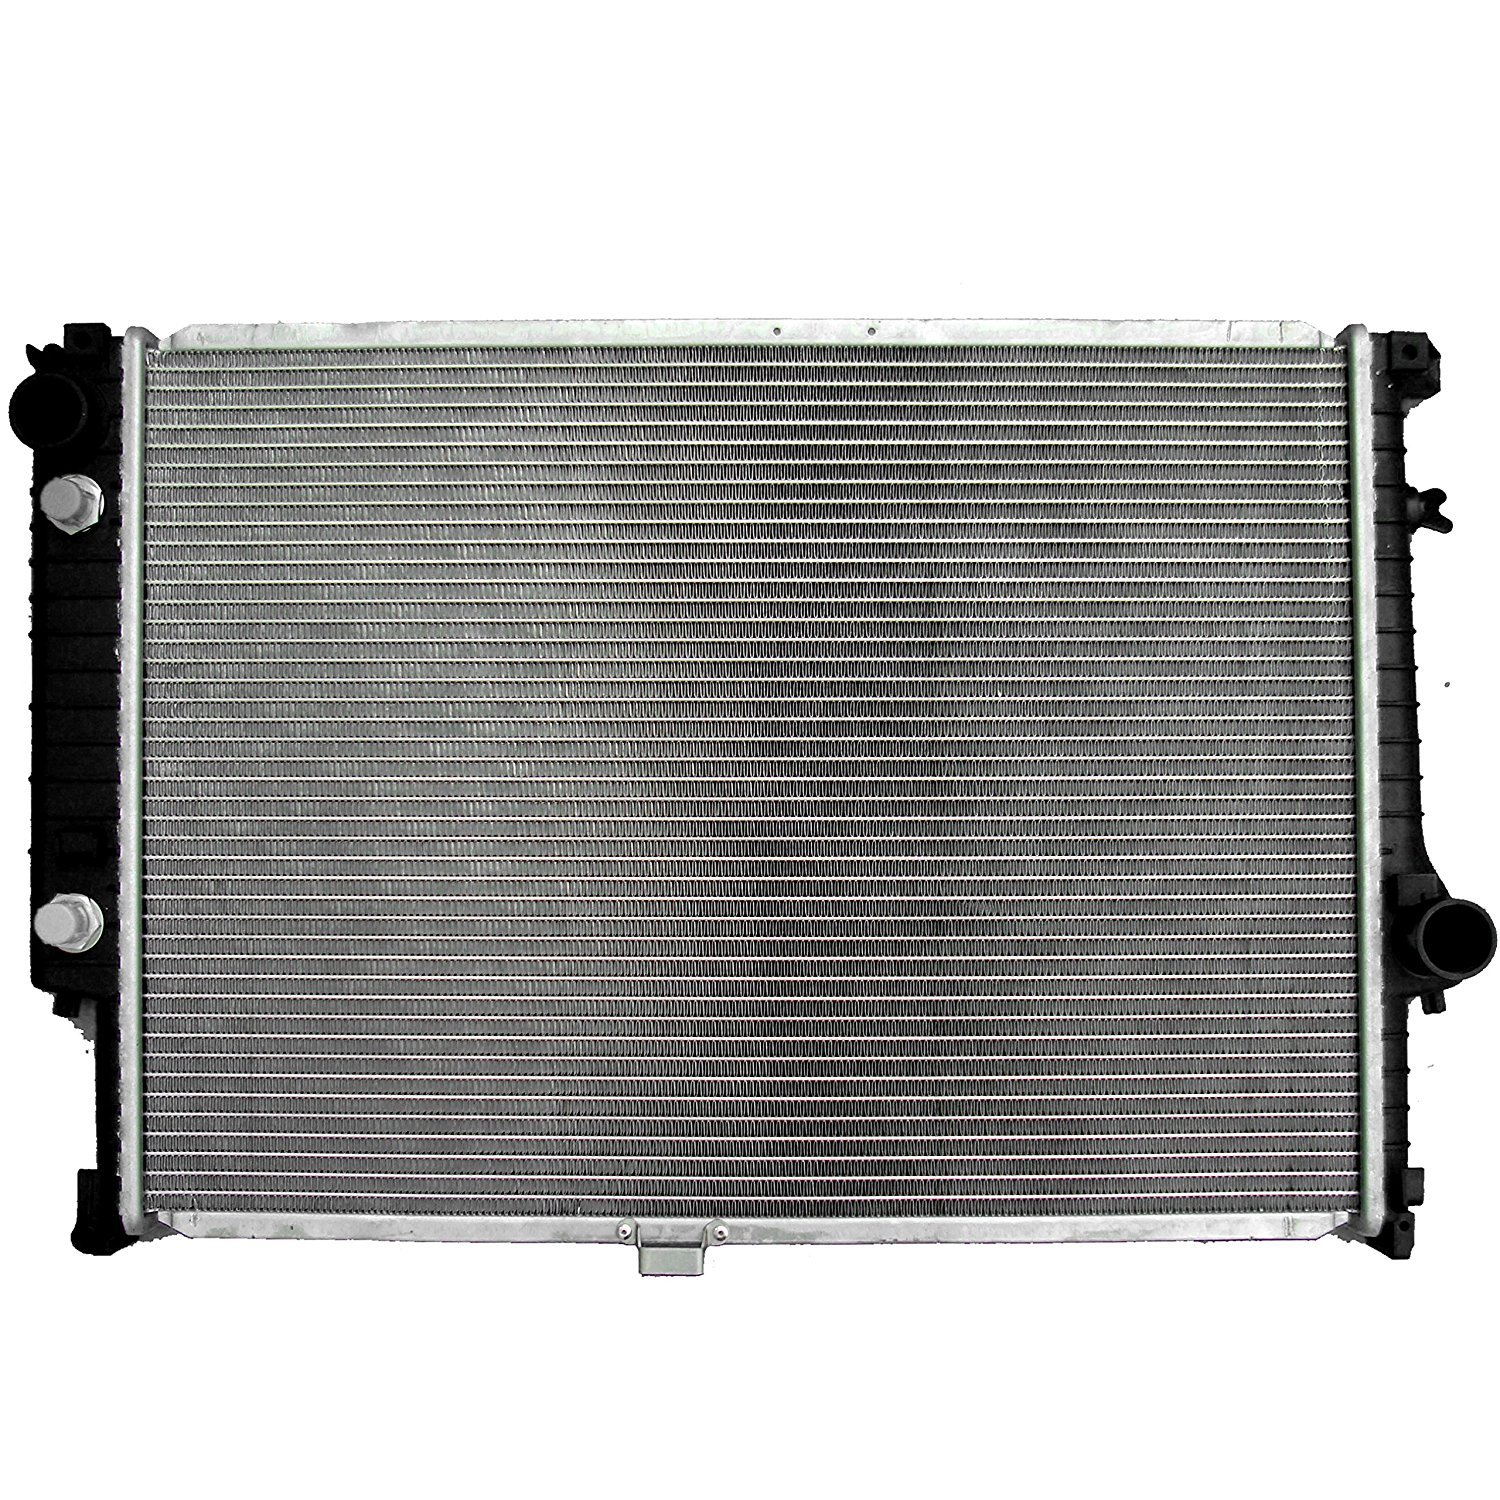 ECCPP Radiator LR0942 for 1987-1992 BMW 735i/735iL Sedan 4-Door 3.5L L6